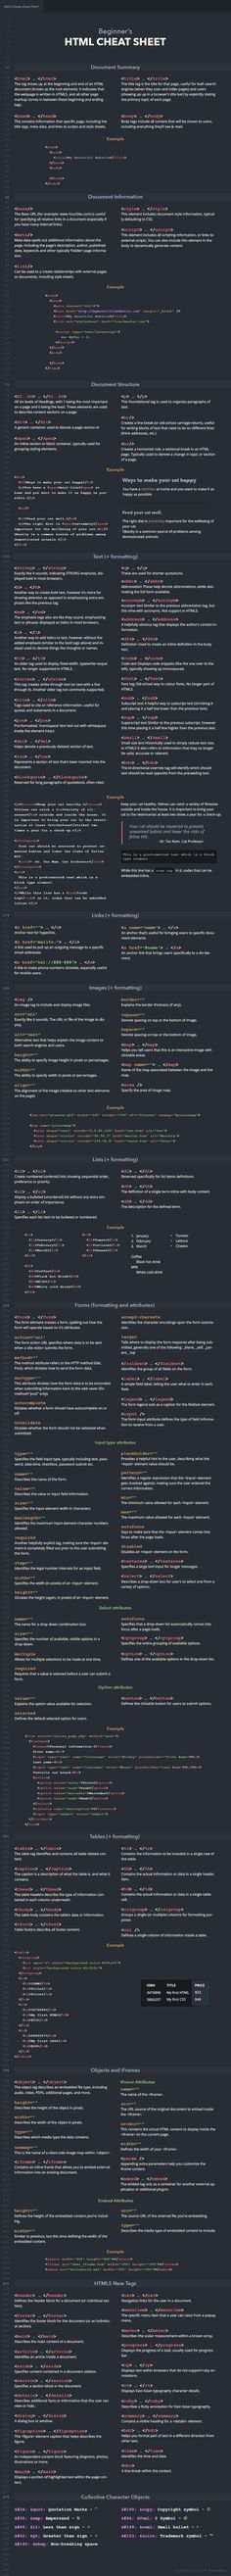 See more HERE: https://www.sunfrog.com/Algorithm-of-Success-Guys-Black.html?53507  HTML cheat sheet gives you a quick reference for commonly used tags,